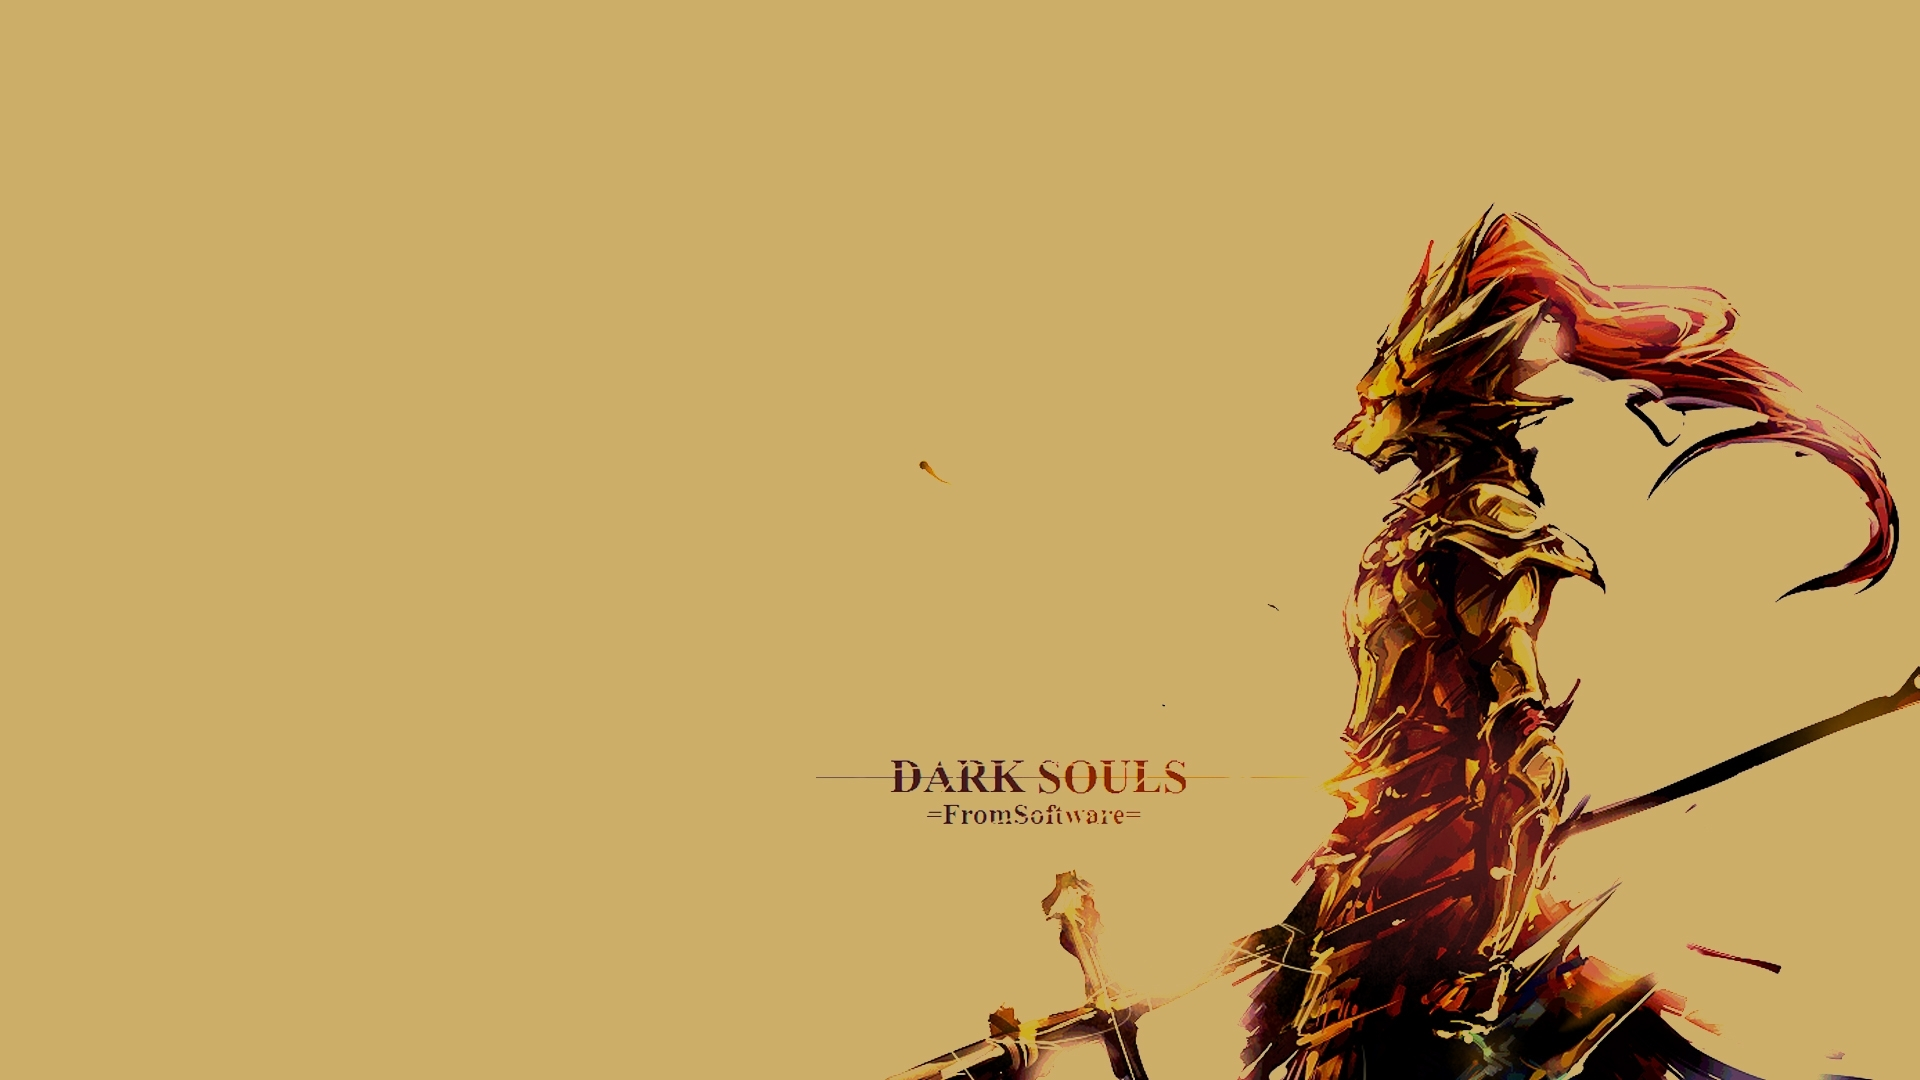 ornstein dark souls hd wallpaper | wallpapers | pinterest | dark